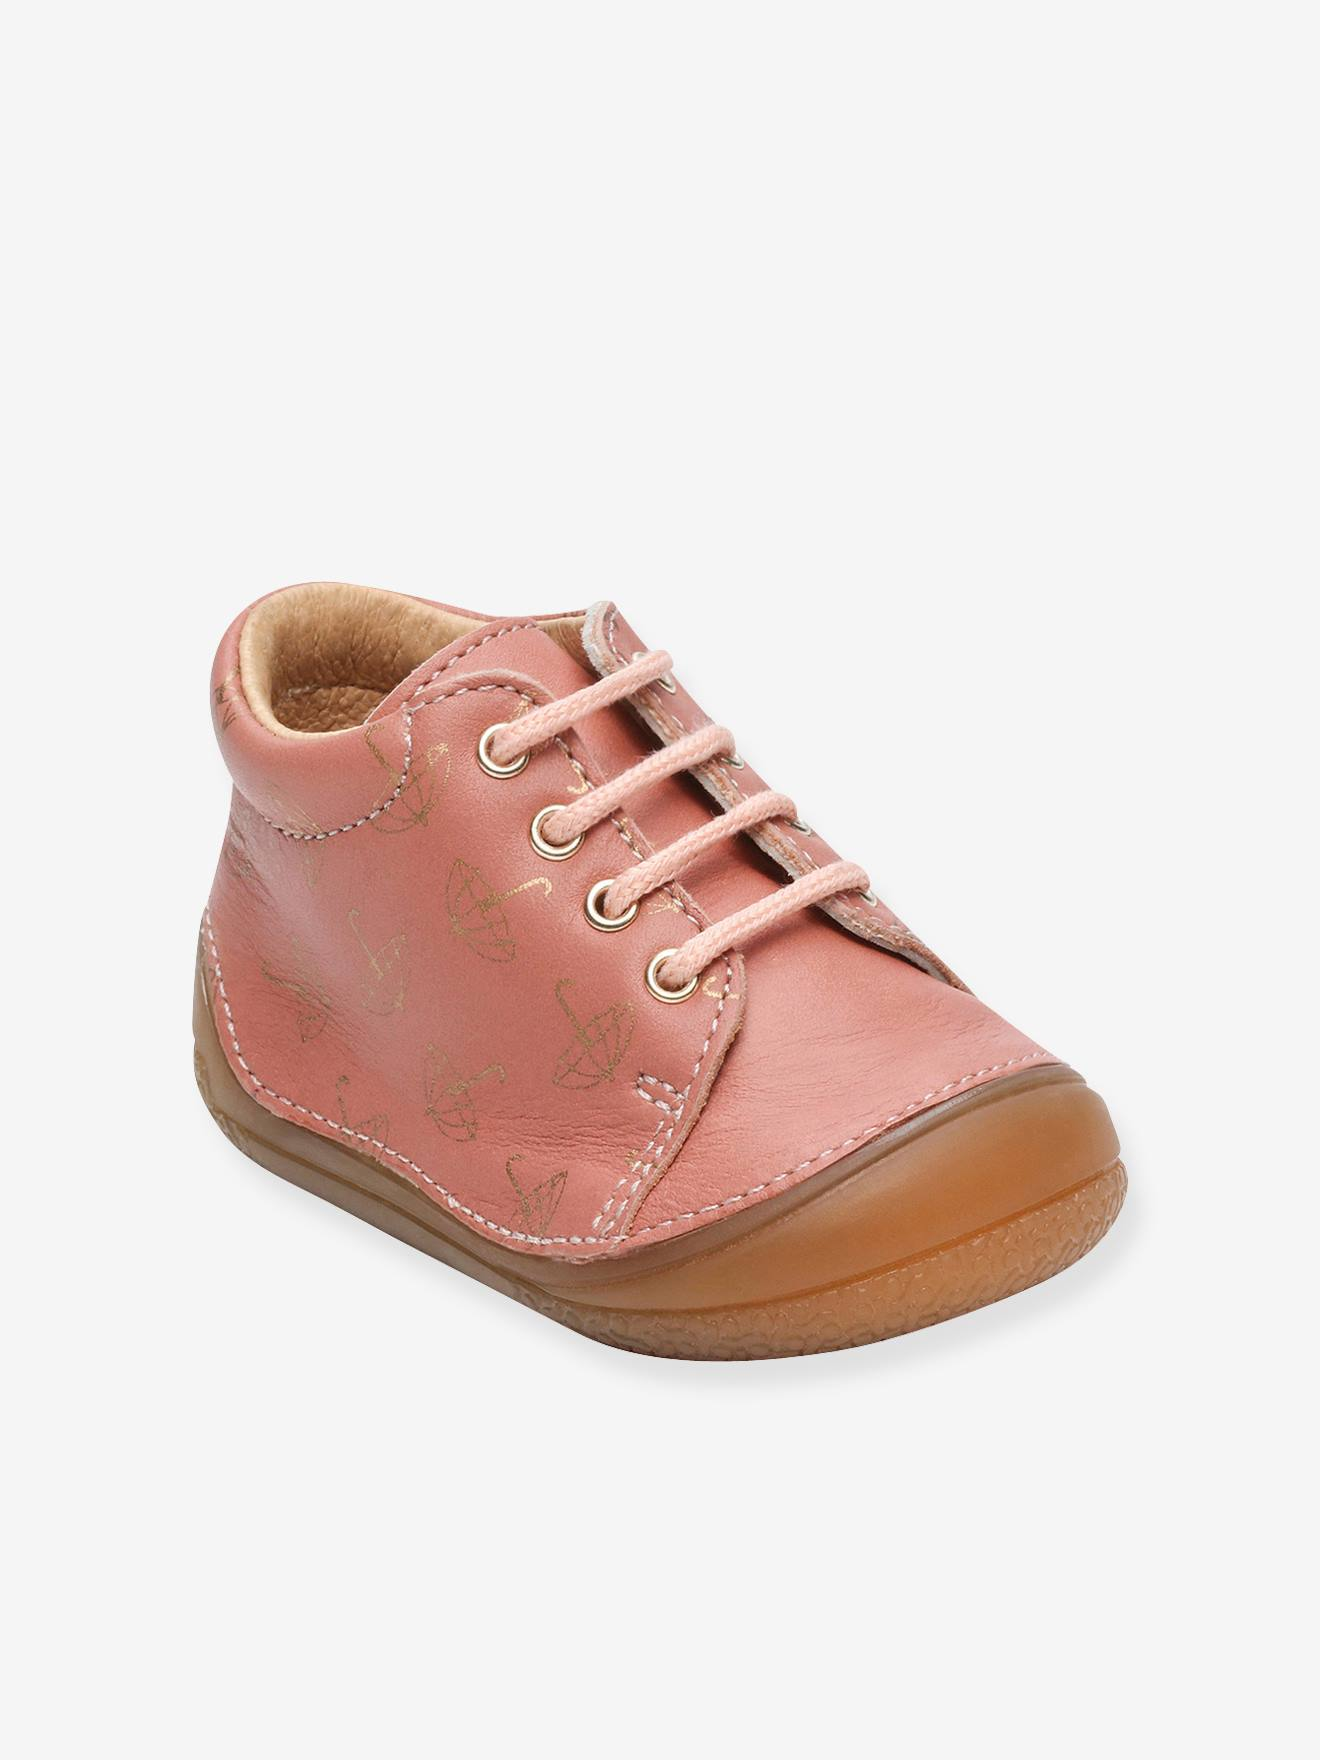 Lace-Up Leather Ankle Boots for Baby